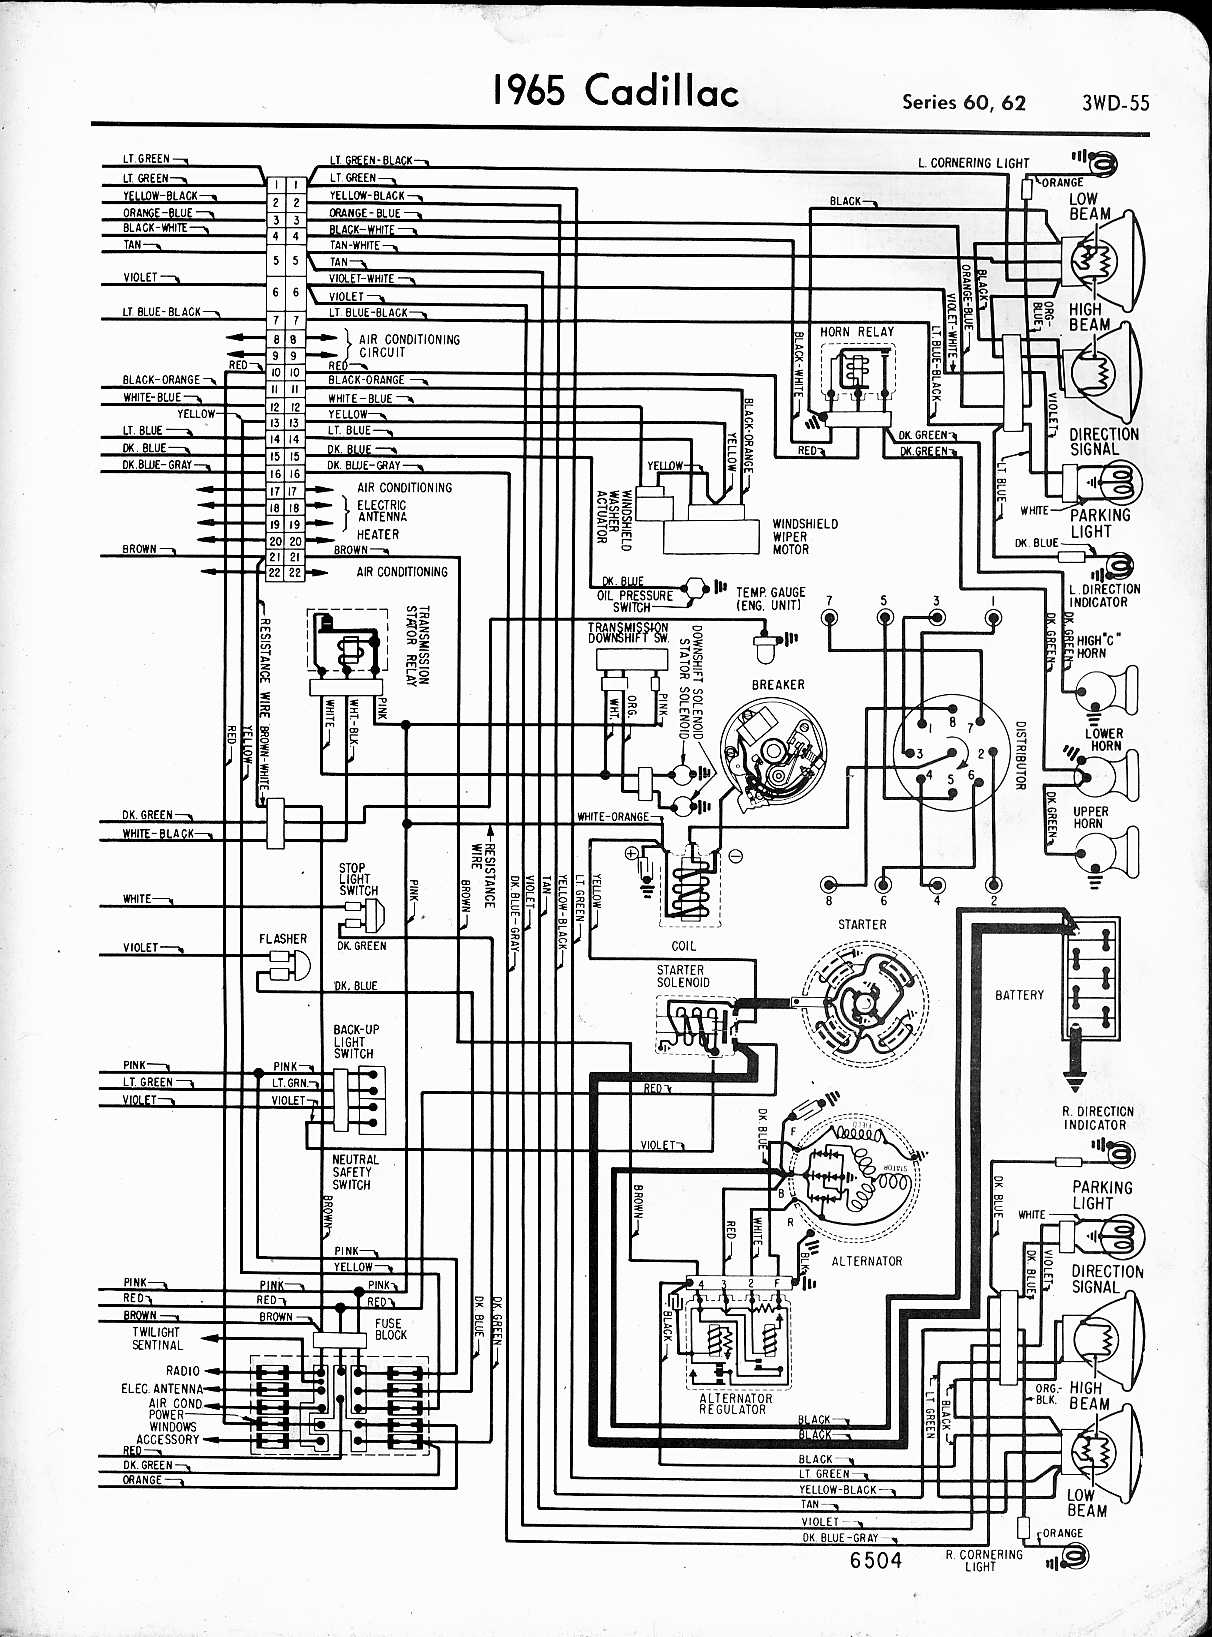 68 Gmc Wiring Harness Diagram Schematics Diagrams 3500 1968 For A 1965 Cadillac Electrical Rh Zavoral Genealogy Com 2004 Truck